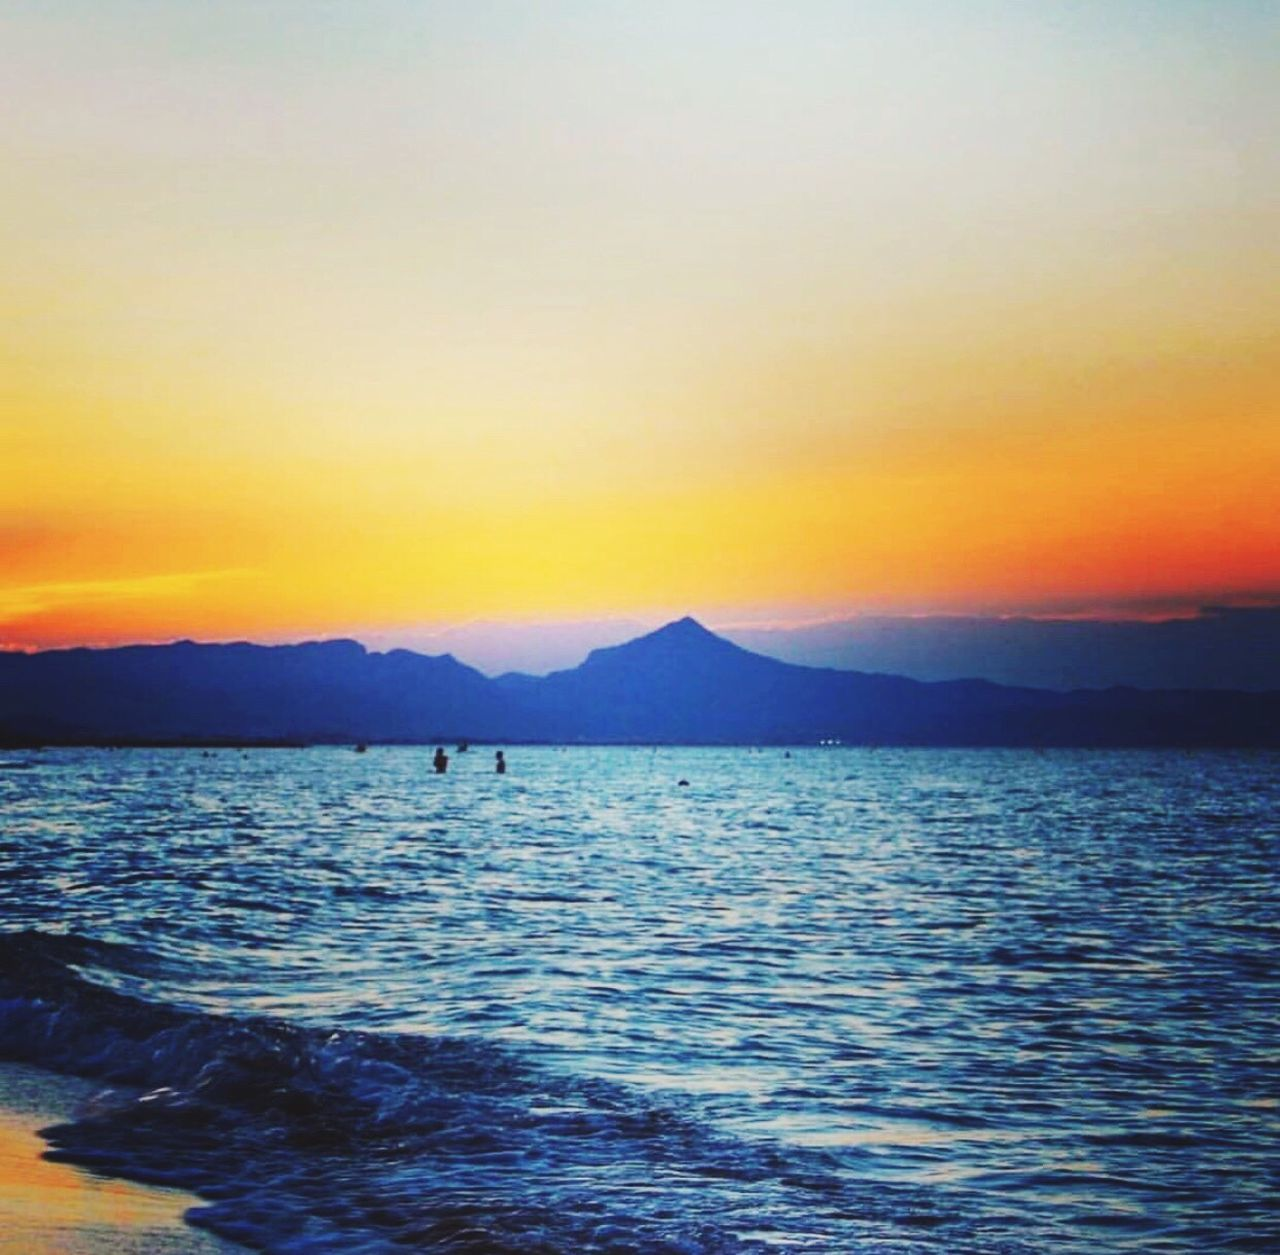 Sunset Beauty In Nature Sea Nature Water Tranquility Mountain Orange Color Denia Tourism